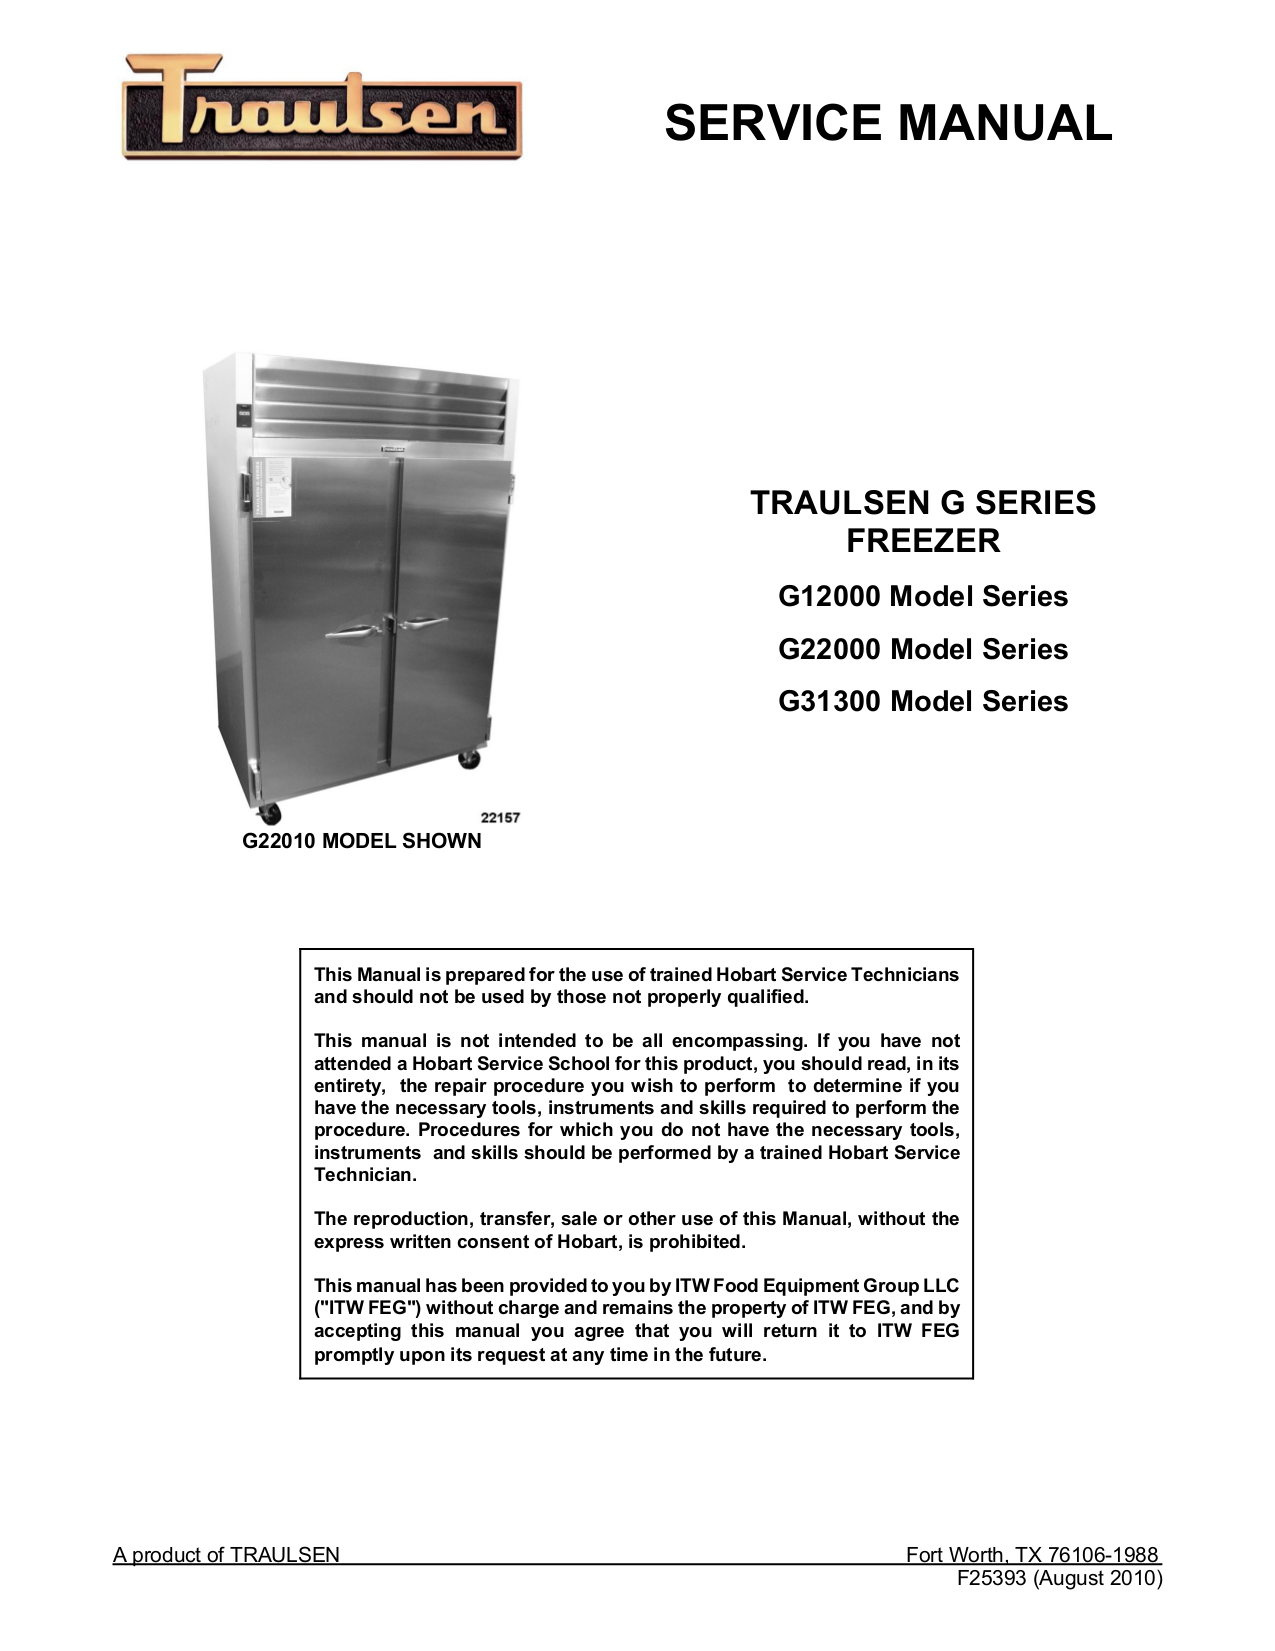 Pdf manual for traulsen freezer g22010 traulsen freezer g22010 pdf page preview cheapraybanclubmaster Image collections